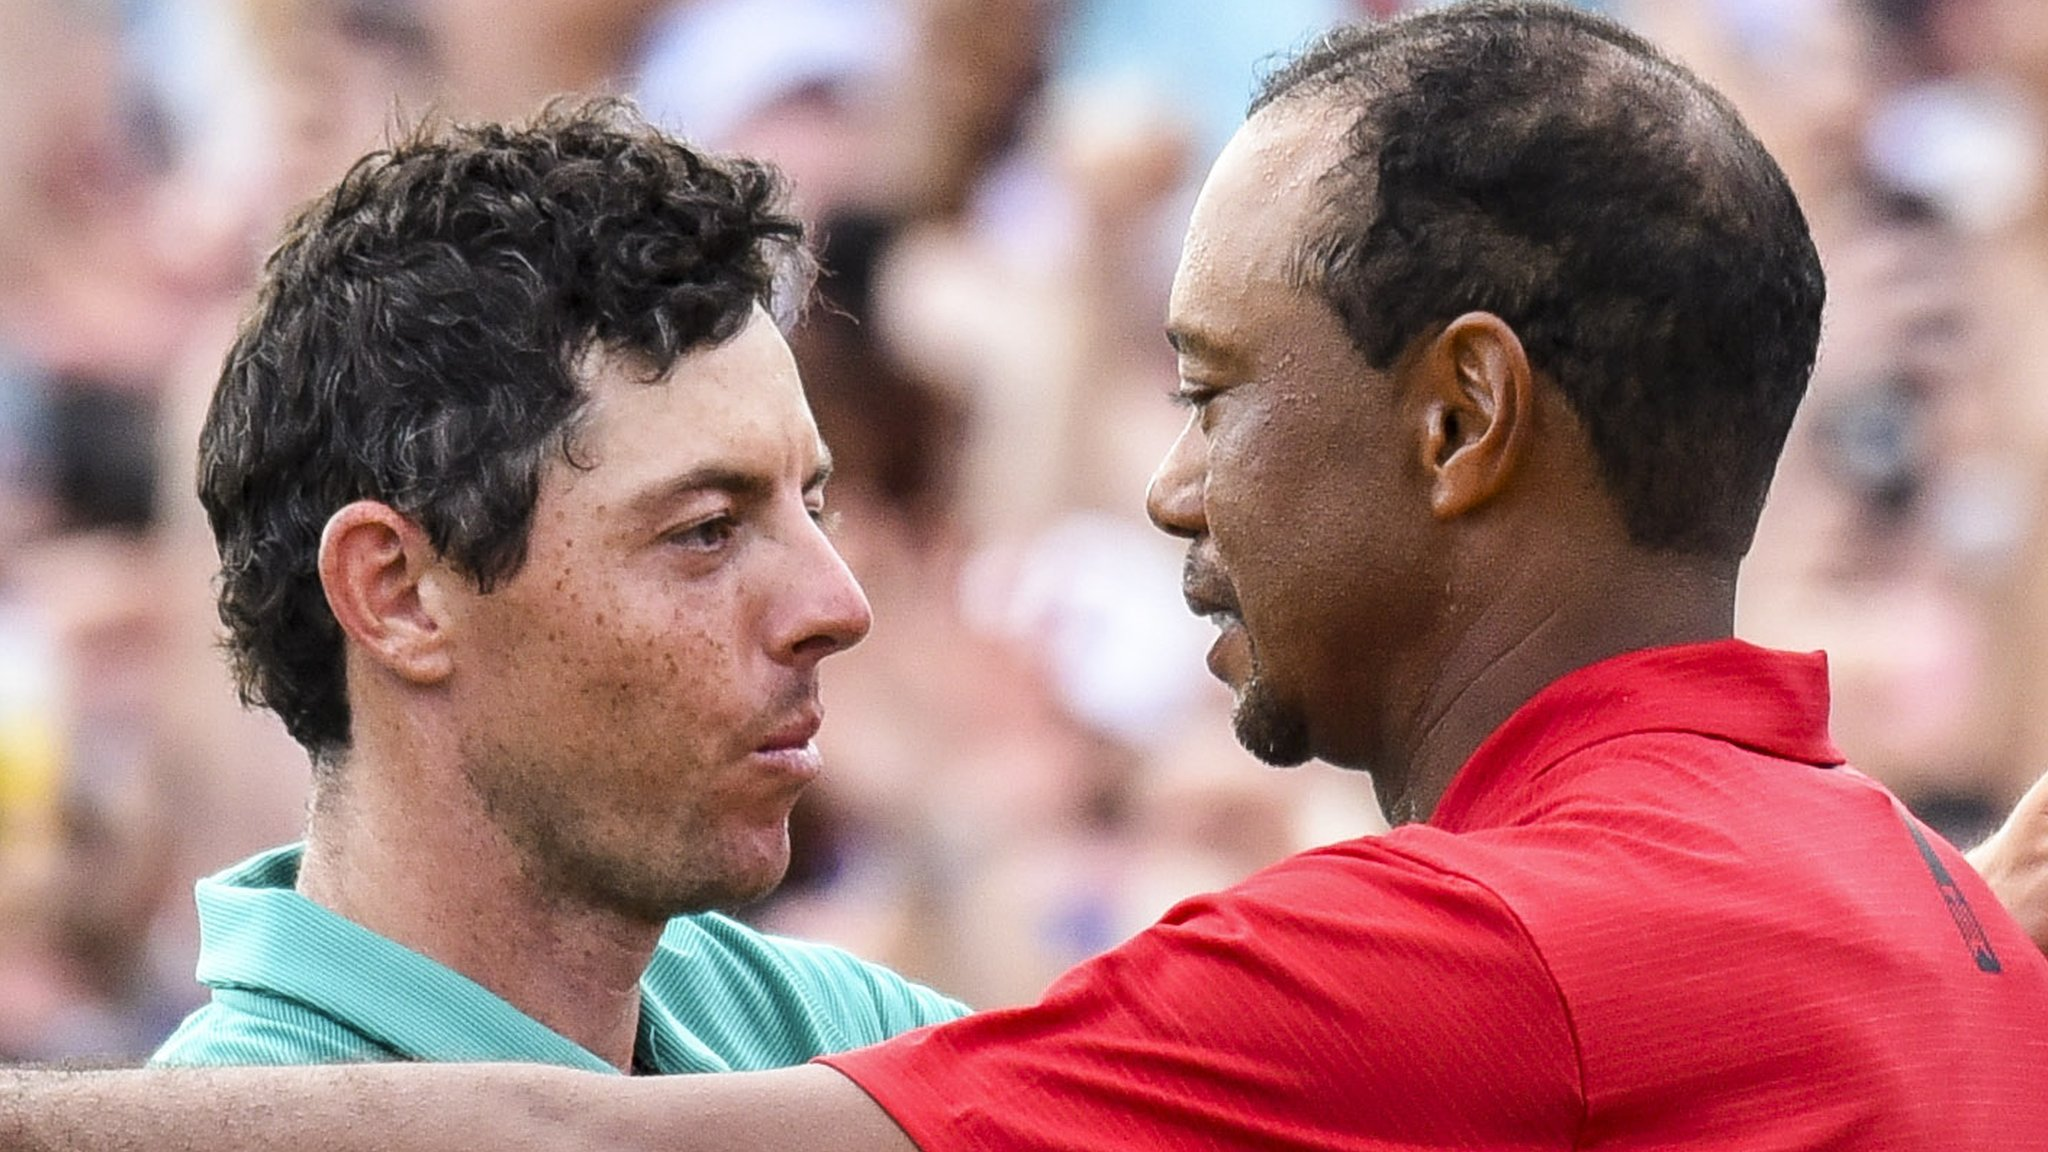 'He's a great kid and we have got close over the years' - Woods on McIlroy friendship